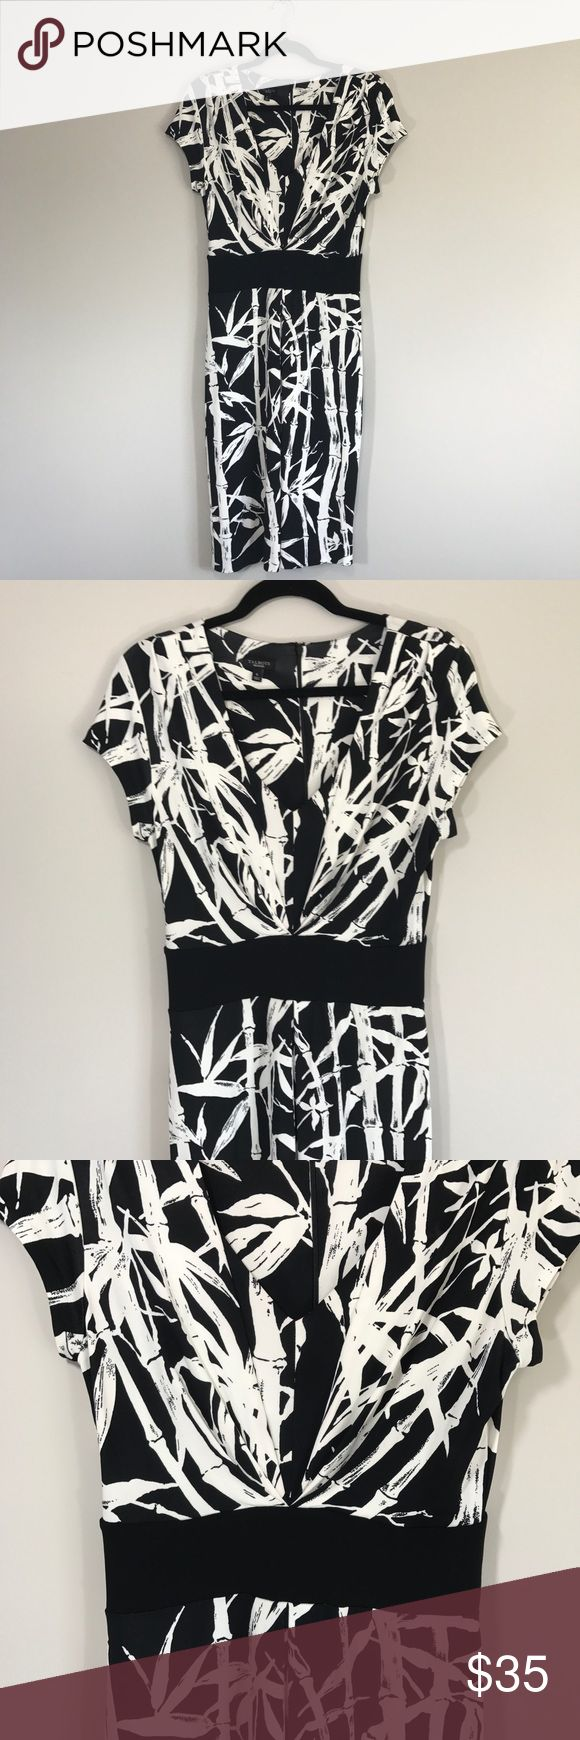 """Talbots Bamboo Print Career Work Wear Midi Dress In excellent used condition. Rayon and Spandex fabric. Very stretchy! Full zip up on back. Size 6, true to size! Please refer to measurements to ensure a proper fit! Pit to pit: 18"""" Length: 40"""" Talbots Dresses Midi"""